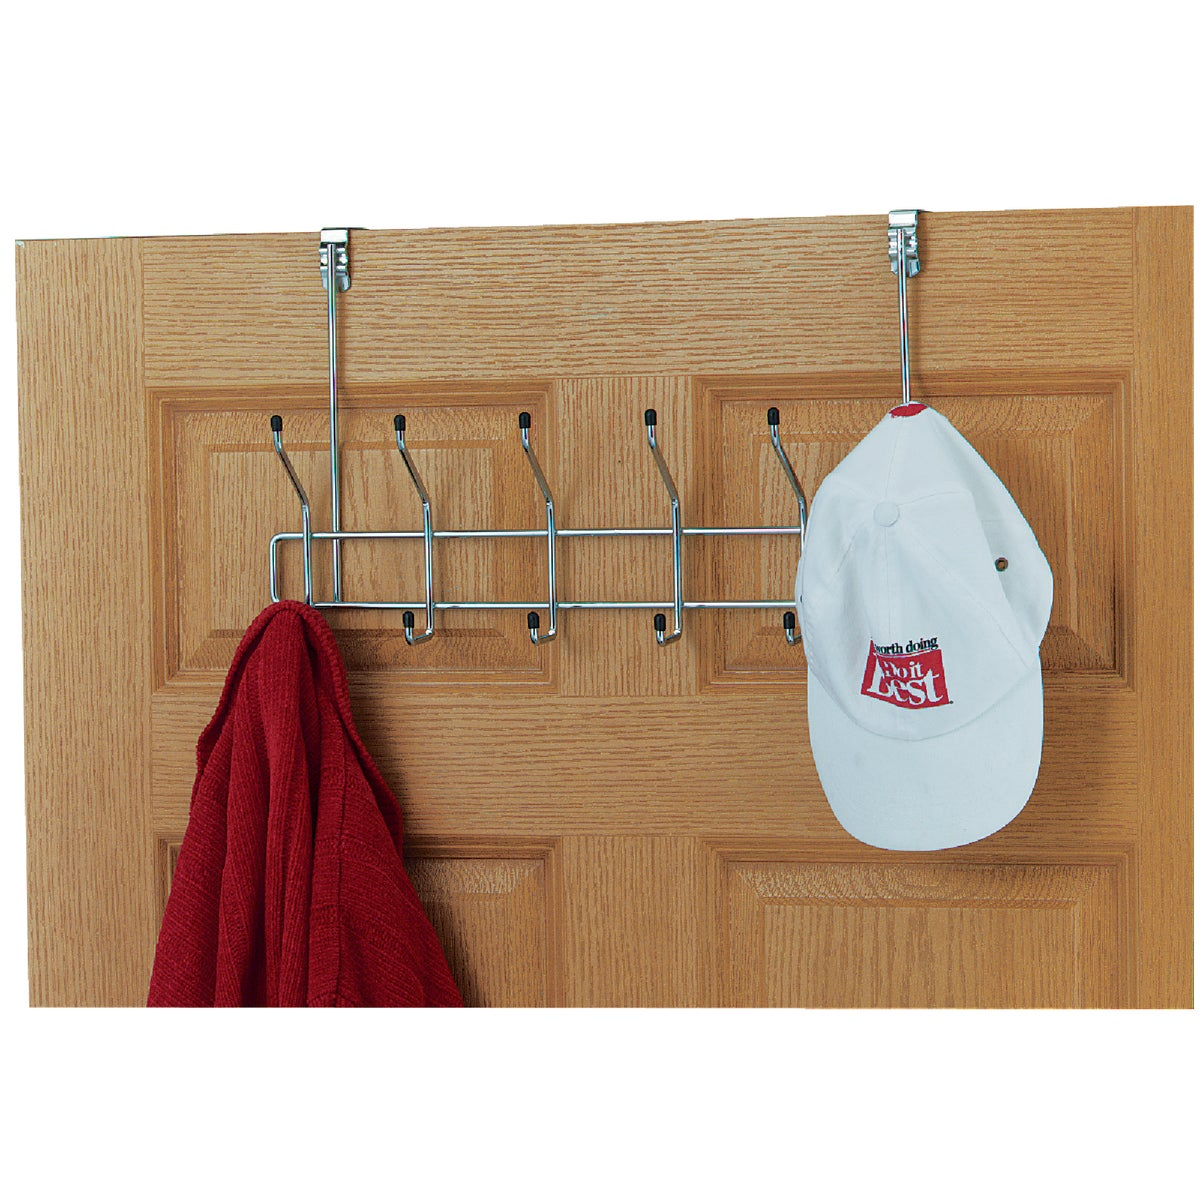 OVER THE DOOR HOOKS - 6021-200 by Whitmor Mfg